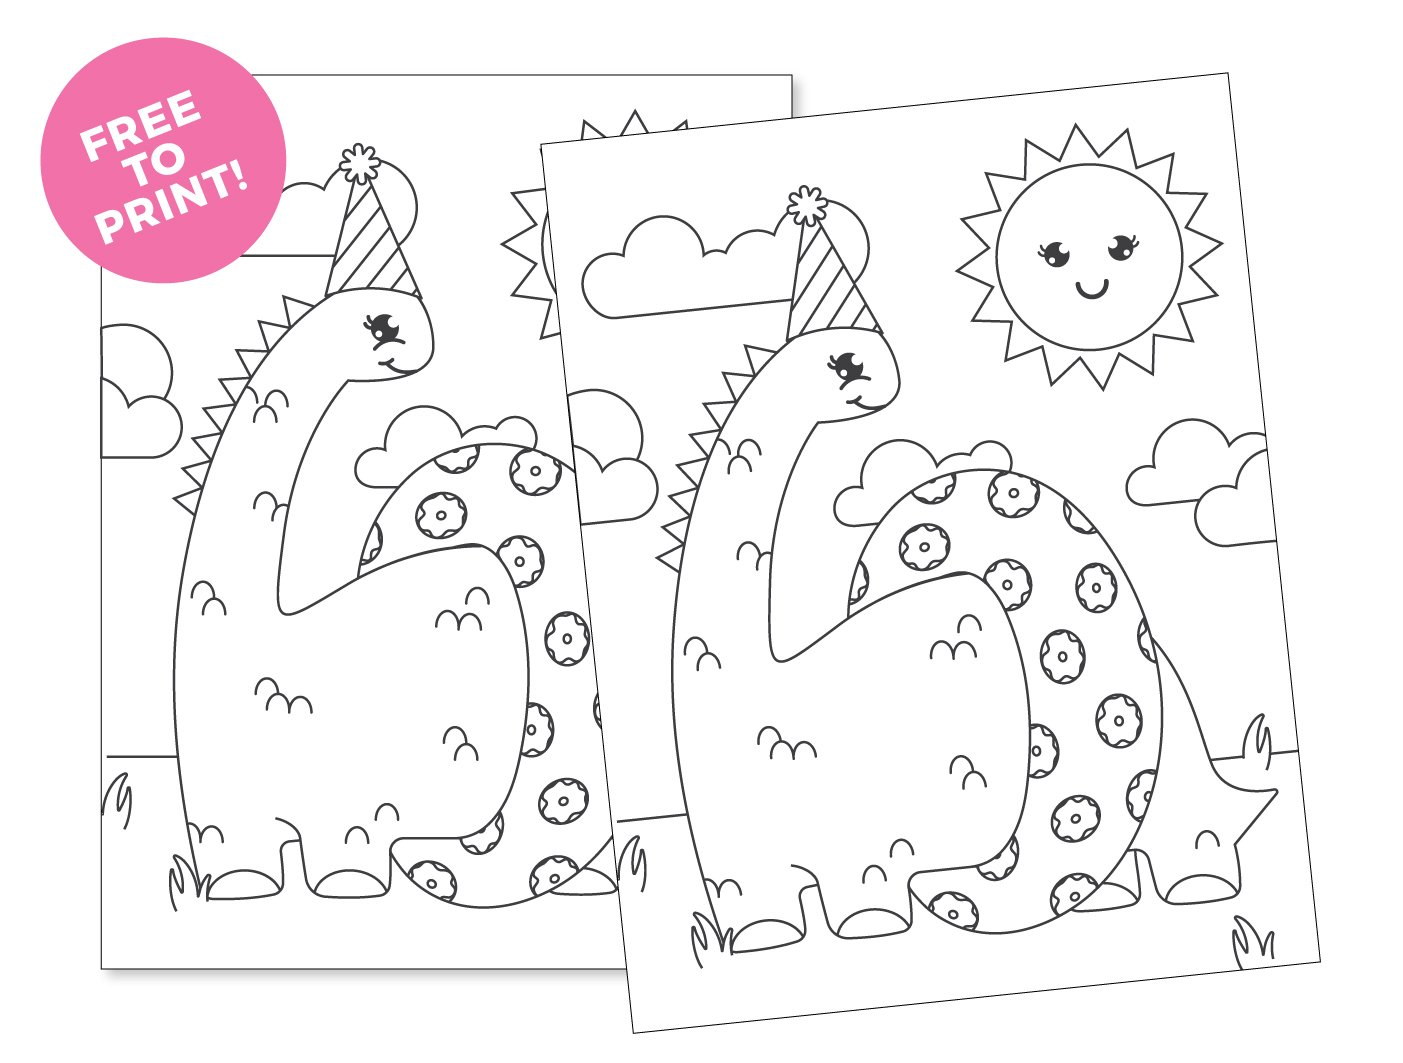 Free to print Printable Dinosaur Coloring Page